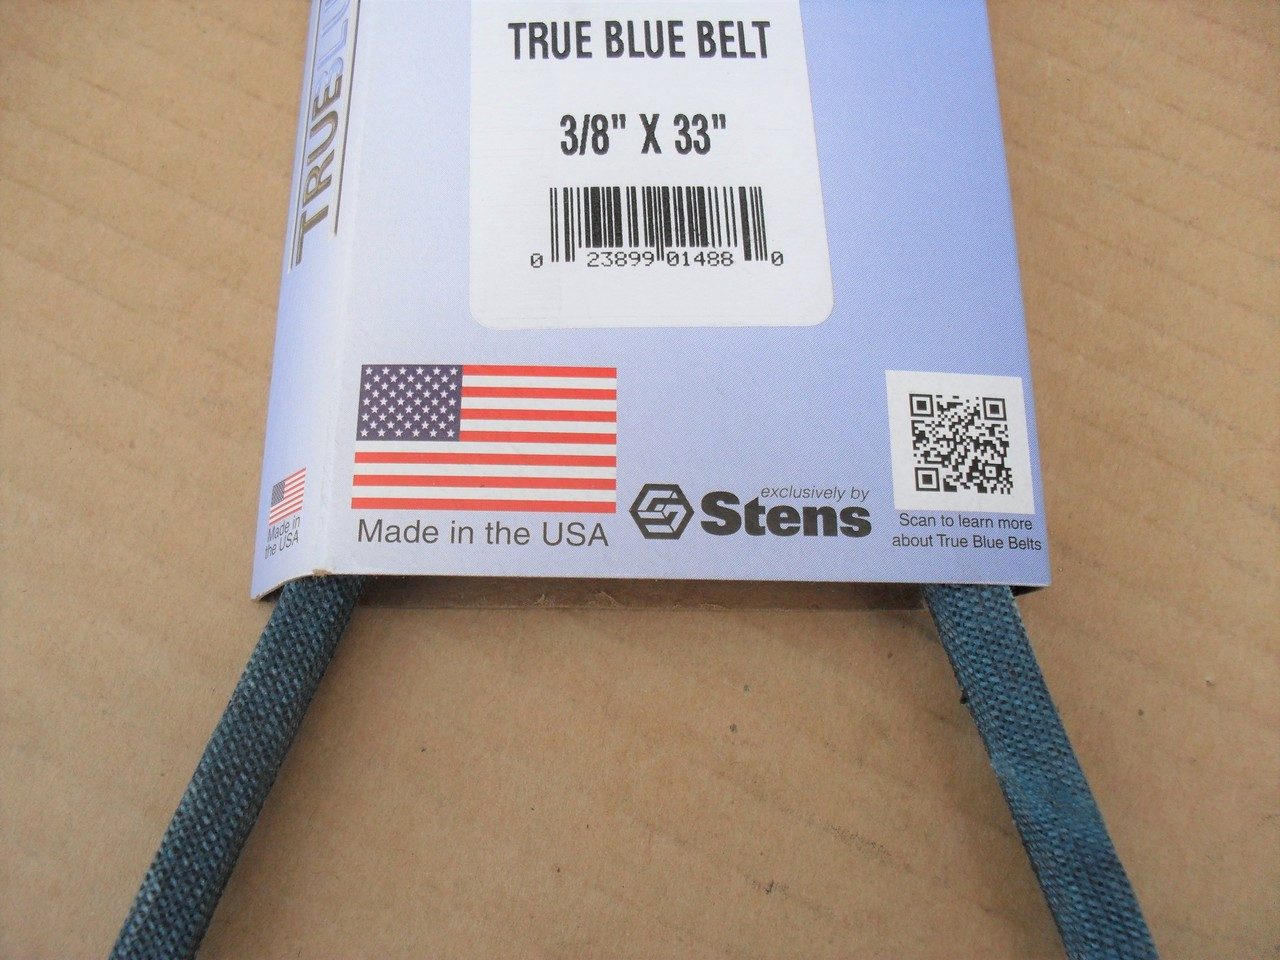 STENS STD325830 made with Kevlar Replacement Belt